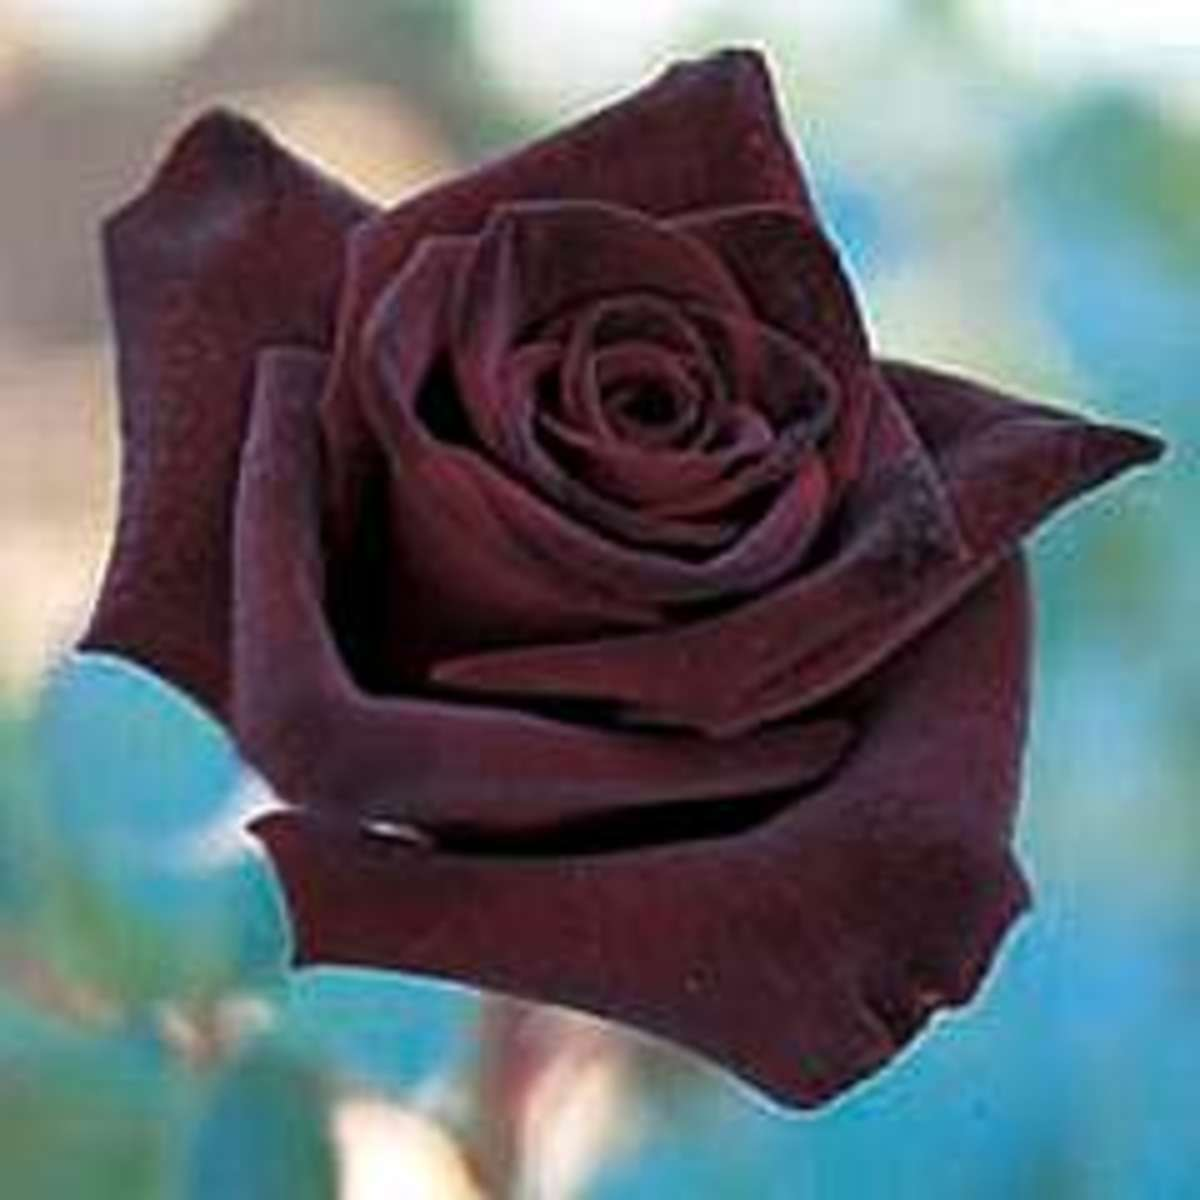 Black Rose meaning is radical love